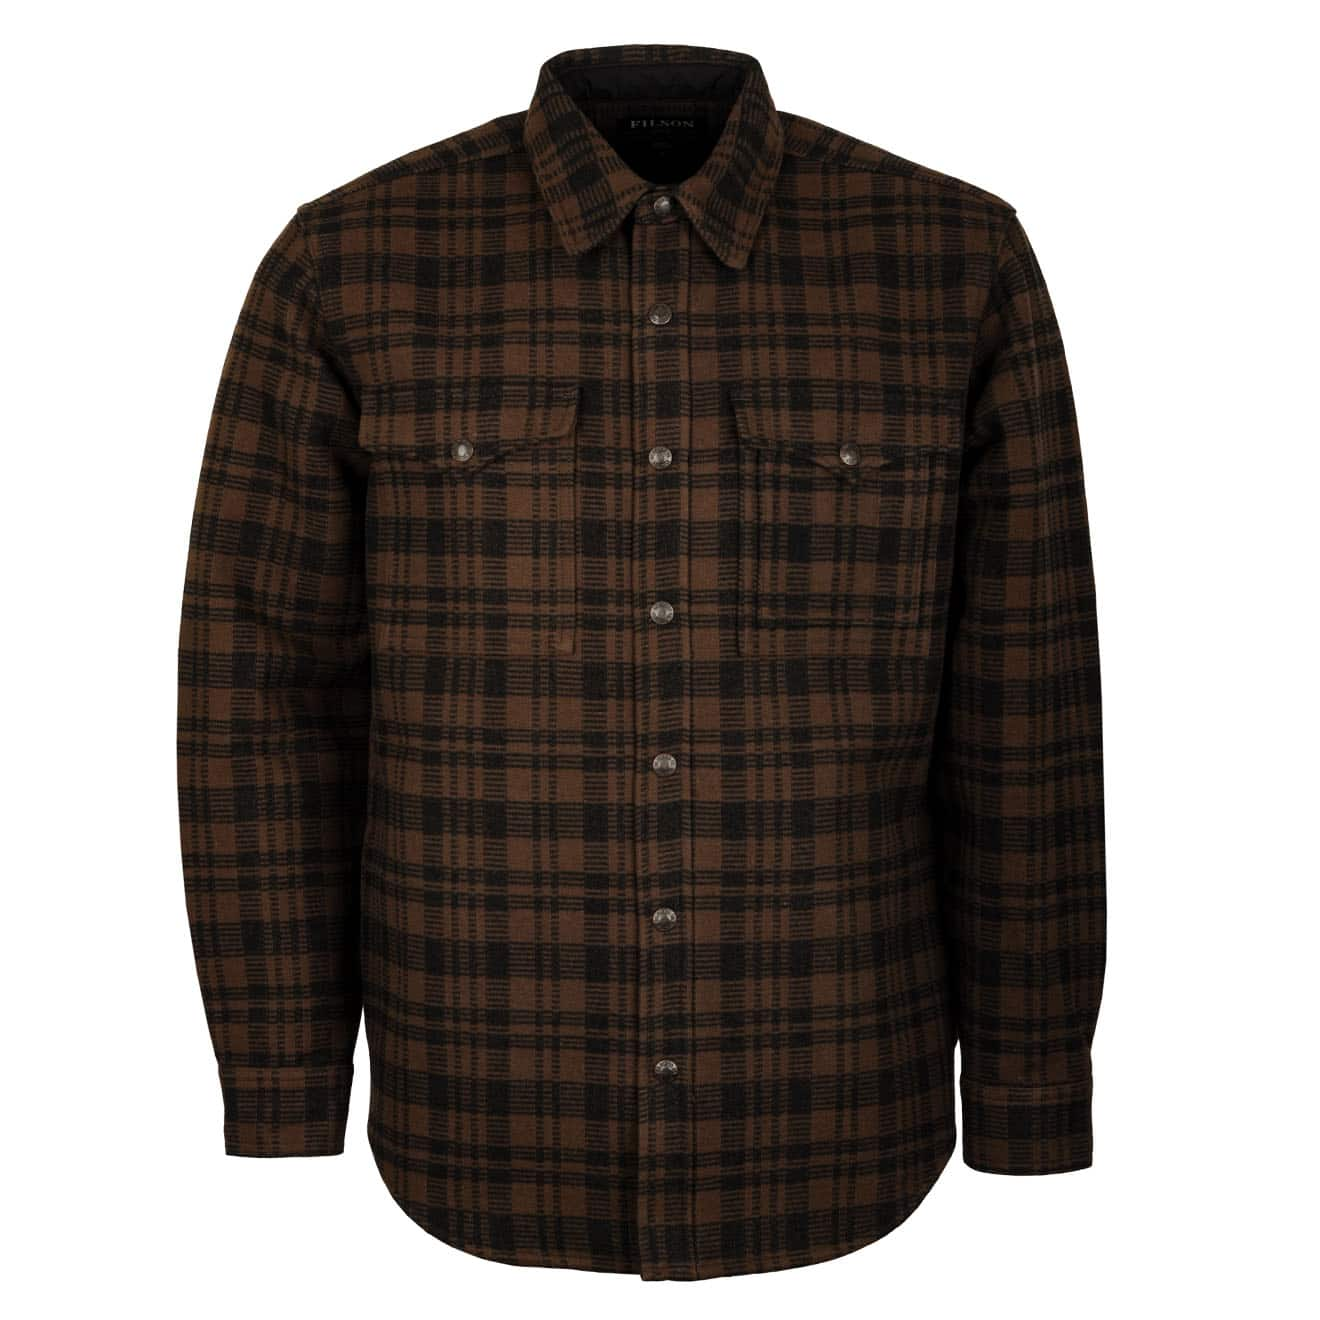 Filson Beartooth Jac Shirt Dark Brown Charcoal